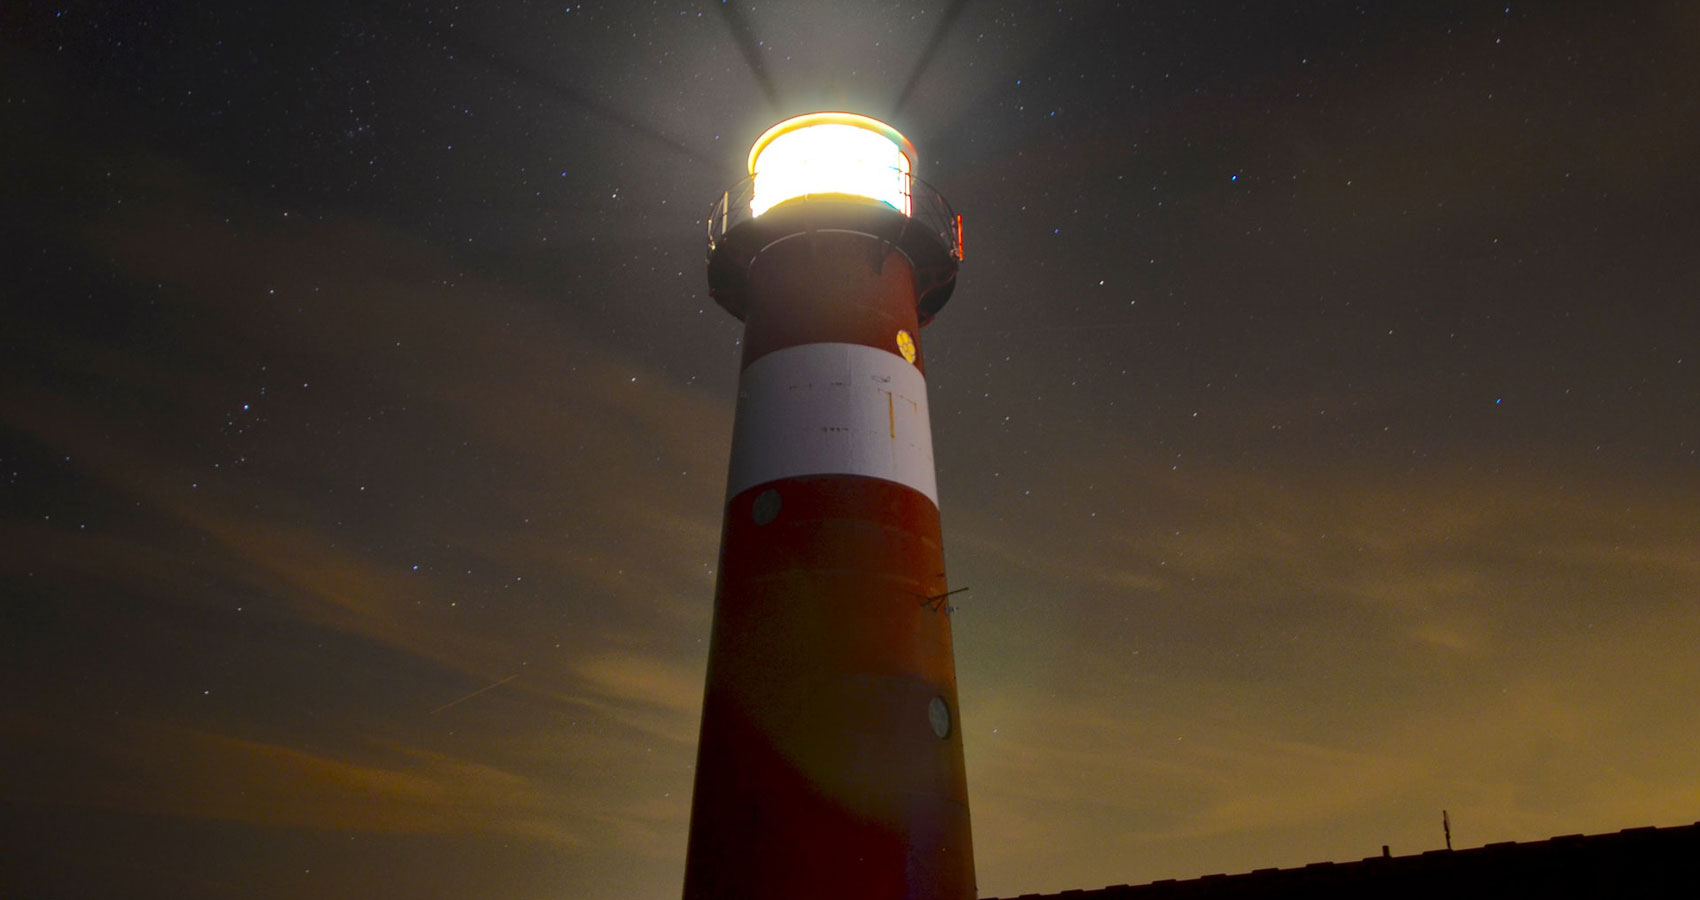 Beacon, poetry written by Edward McCloud at Spillwords.com